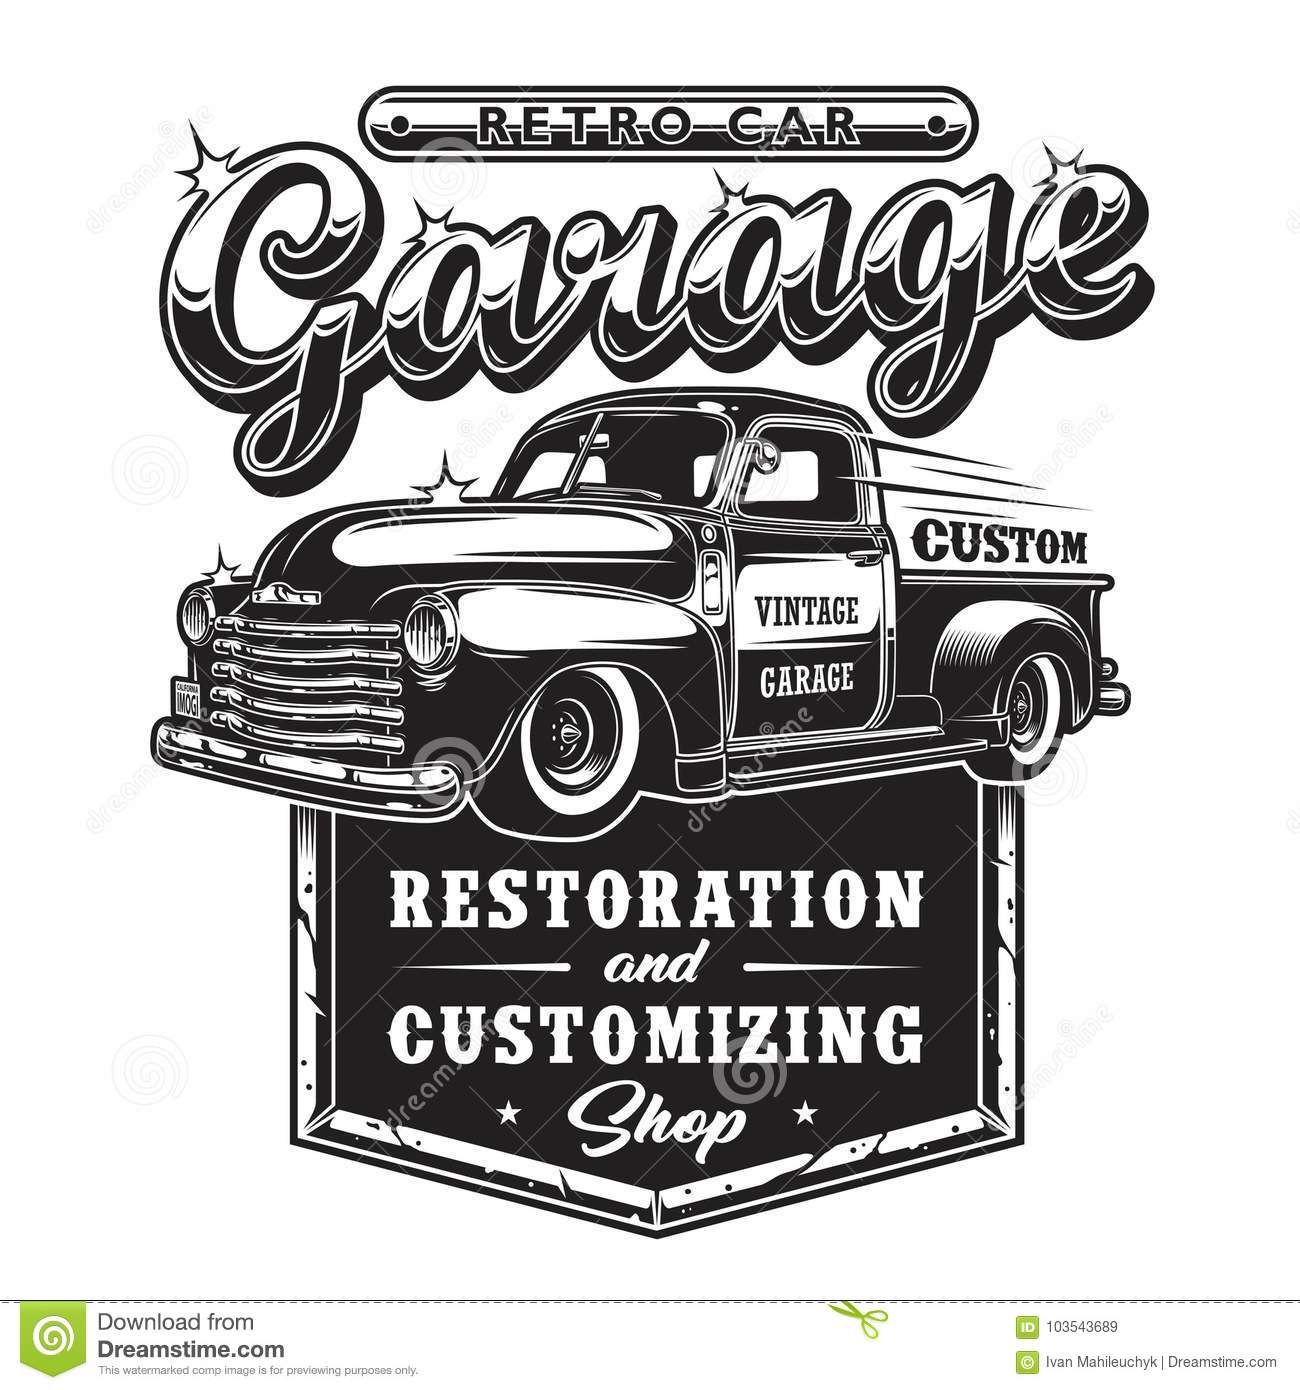 Car And Truck Shop >> Retro Car Repair Garage Sign With Retro Style Truck Stock